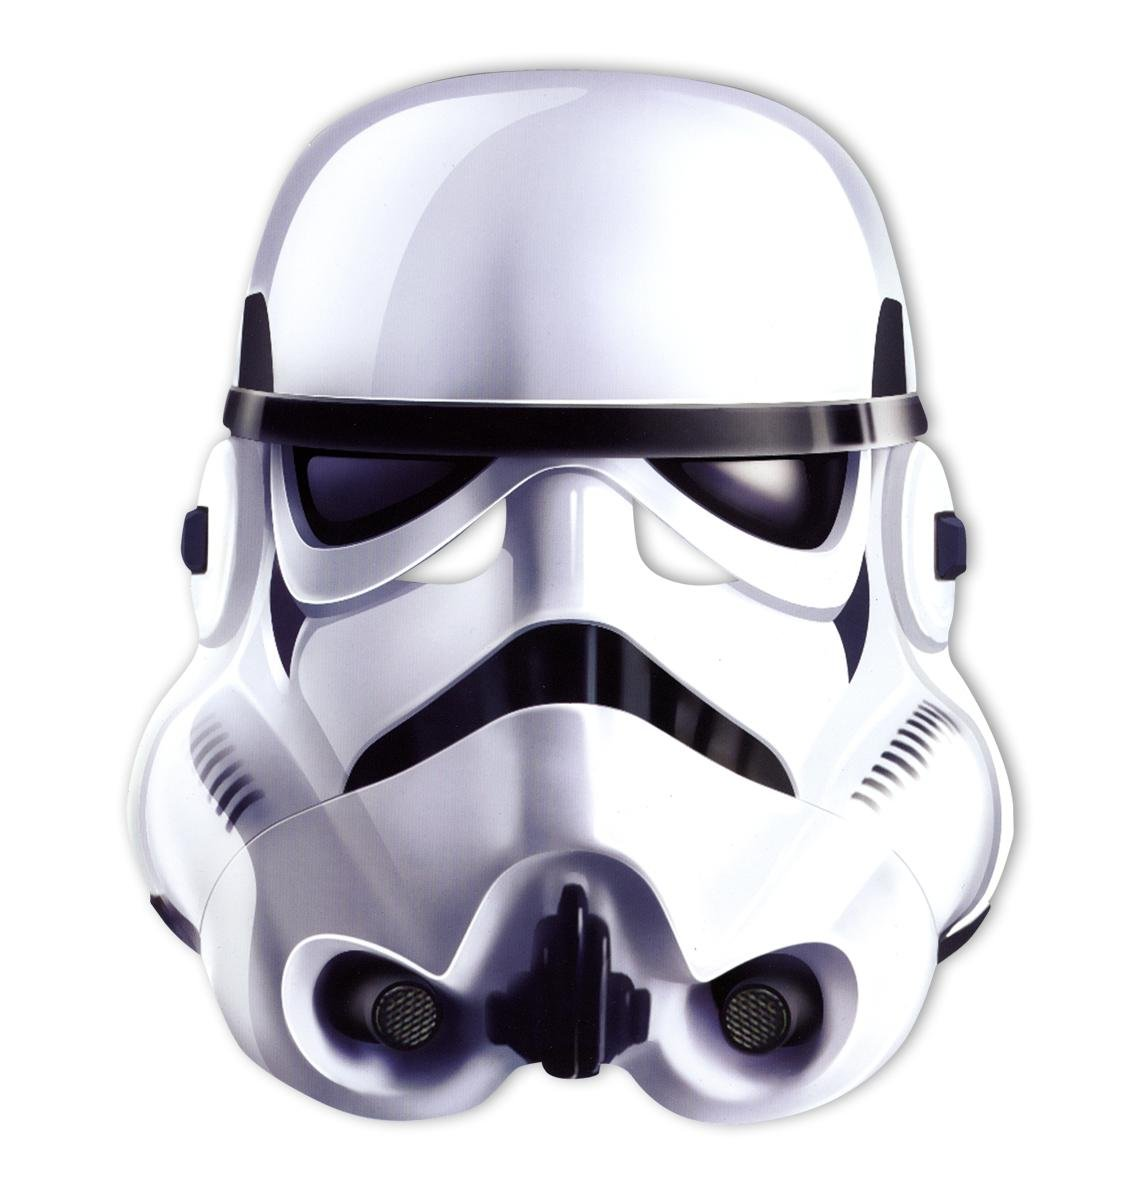 Amazon.com: Star Wars party-mask Stormtrooper: Kitchen & Dining